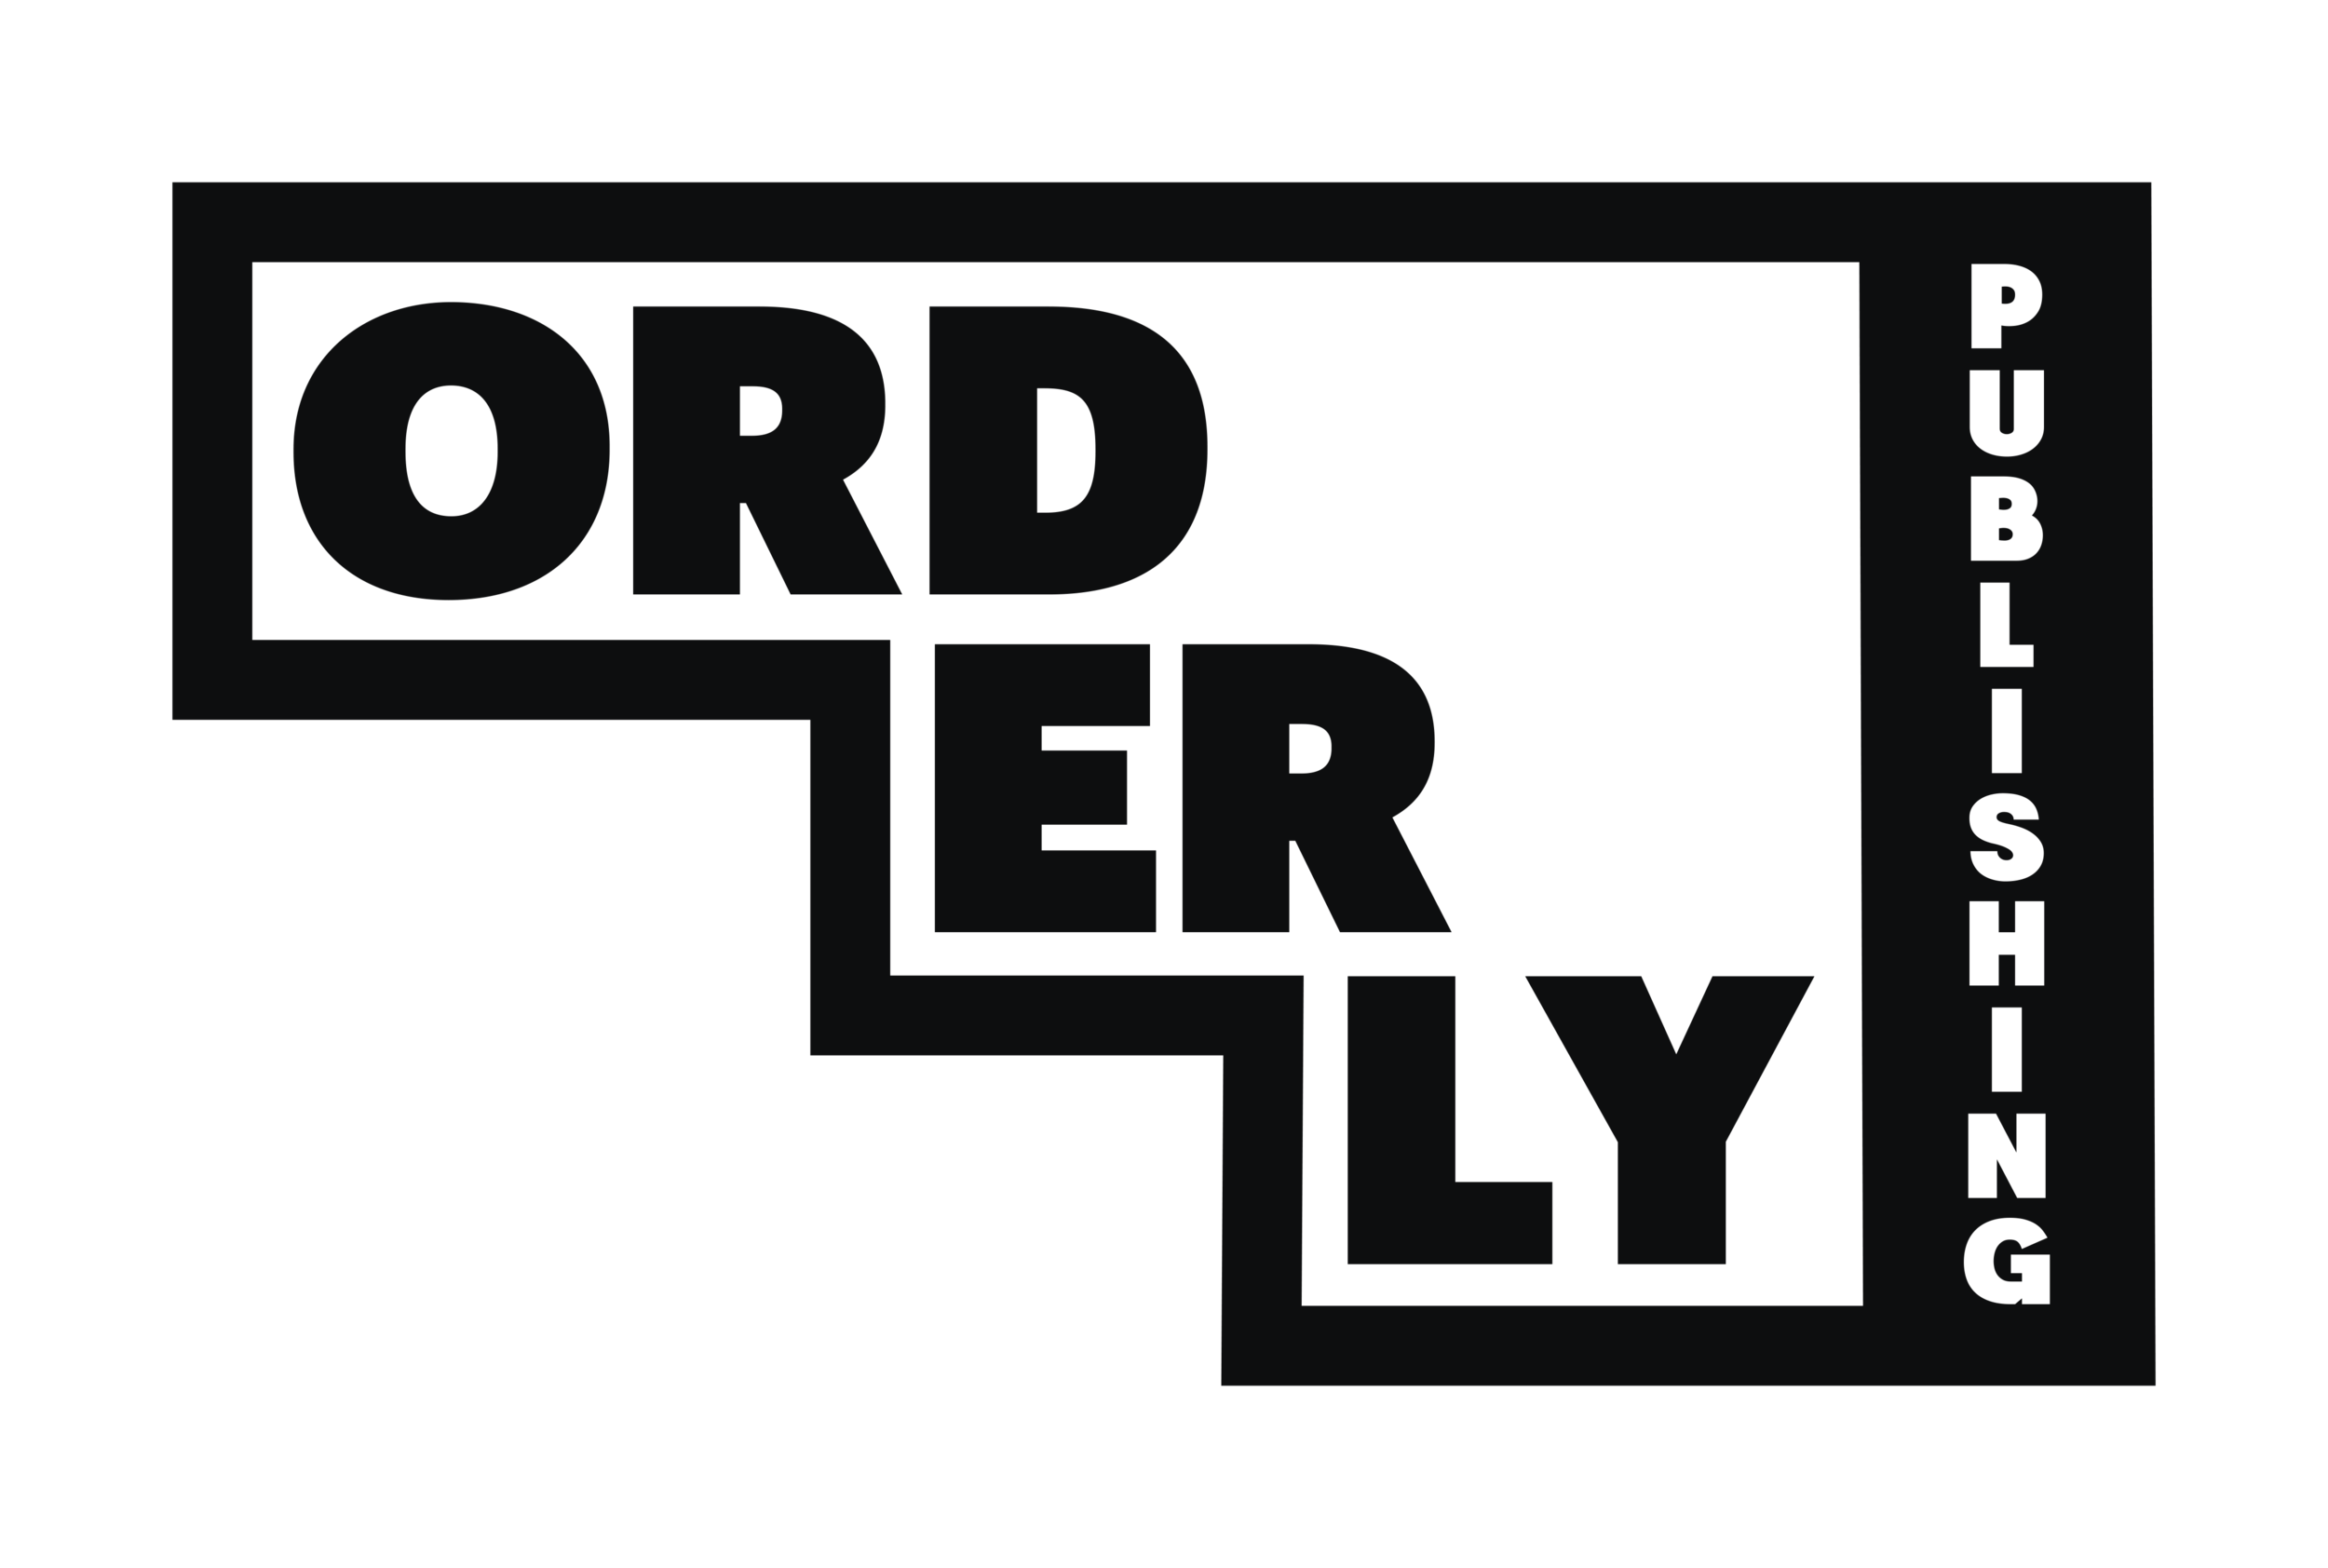 Orderly-Logo-final.png